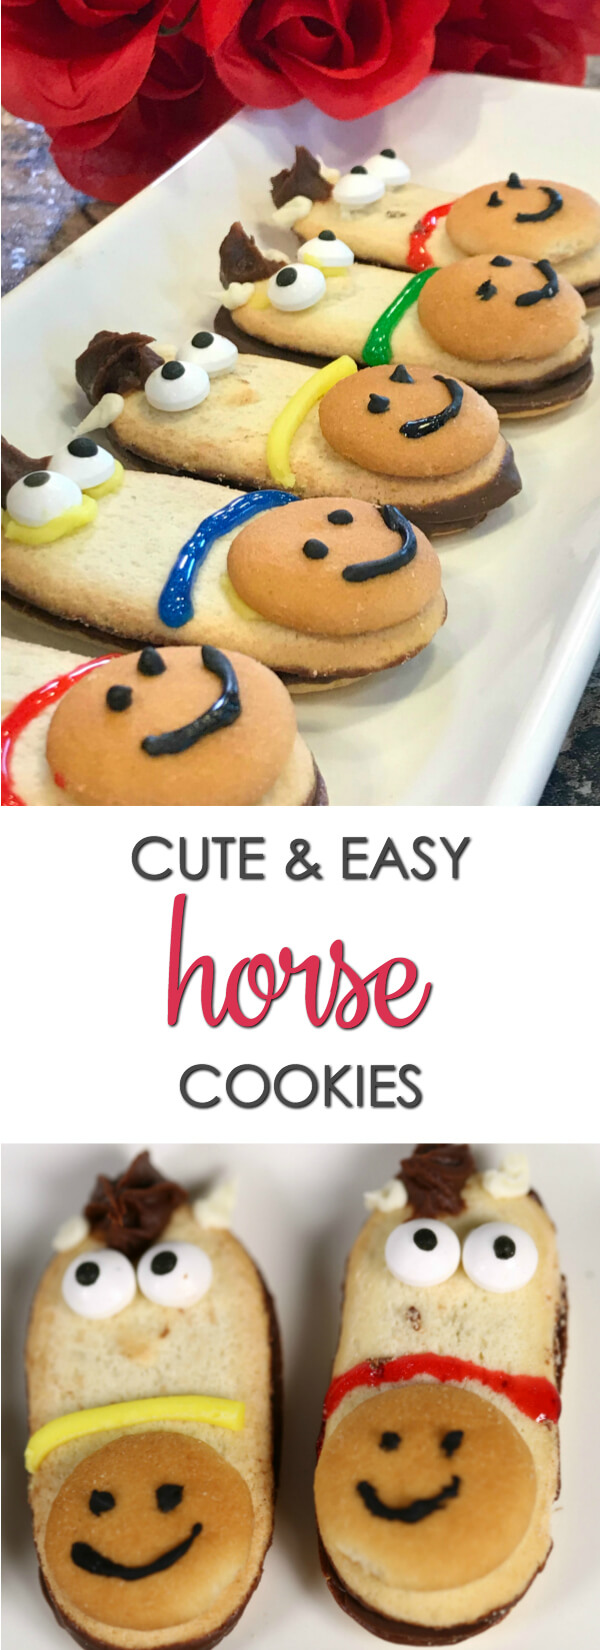 These adorable cookies are easy to make and one of my favorite horse party ideas! If you're planning a horse-themed party, you must make this adorable (and easy) horse cookie recipes. It's one of my favorite horse party ideas! These cute cookies come together quickly and are super adorable. They're perfect if you need Kentucky Derby party recipes, too.   www.itisakeeper.com  #KentuckyDerby #Horses #Cookies #recipes #SemiHomemade #EasyRecipe #Dessert #ItIsaKeeper #Horseparty